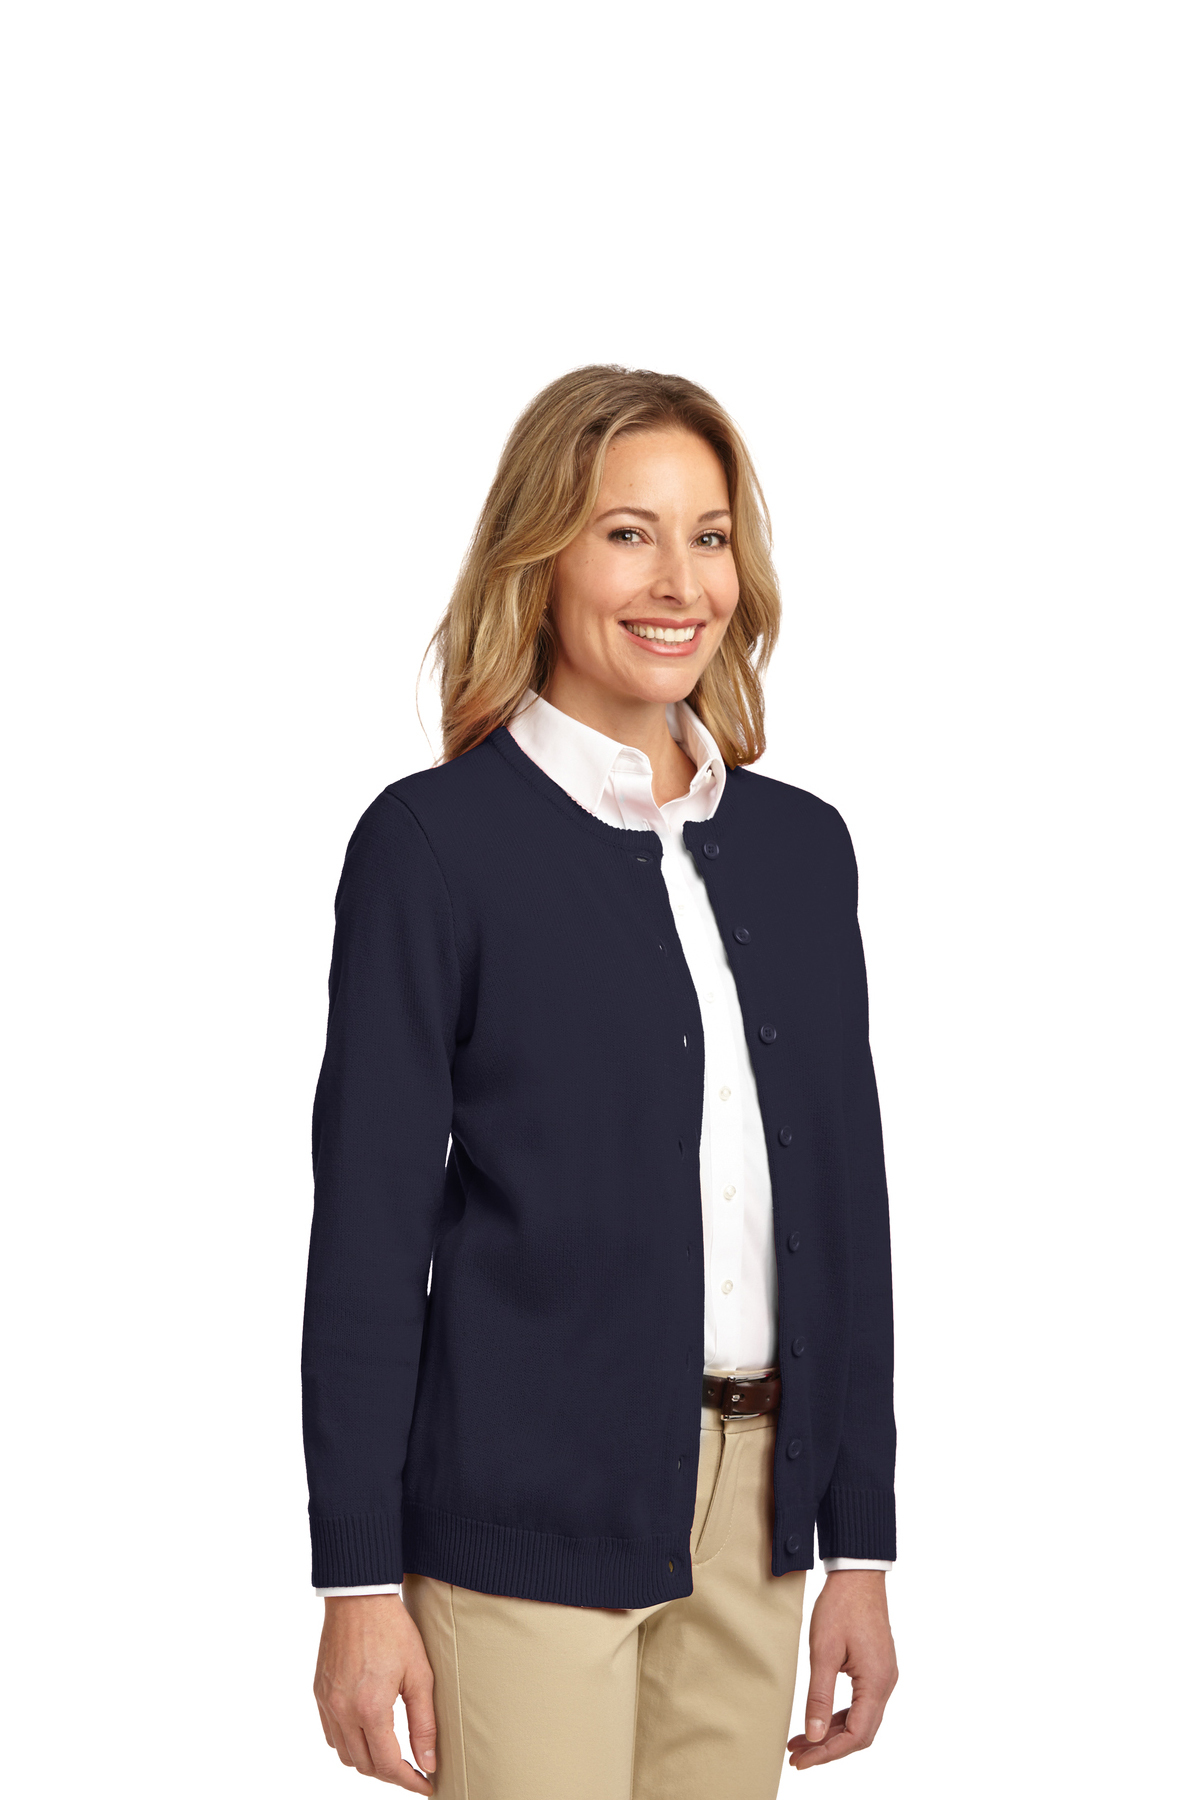 0530b80583 ... Port Authority® Ladies Value Jewel-Neck Cardigan Sweater. A maximum of  8 logos have been uploaded. Please remove a logo from My Logos to continue